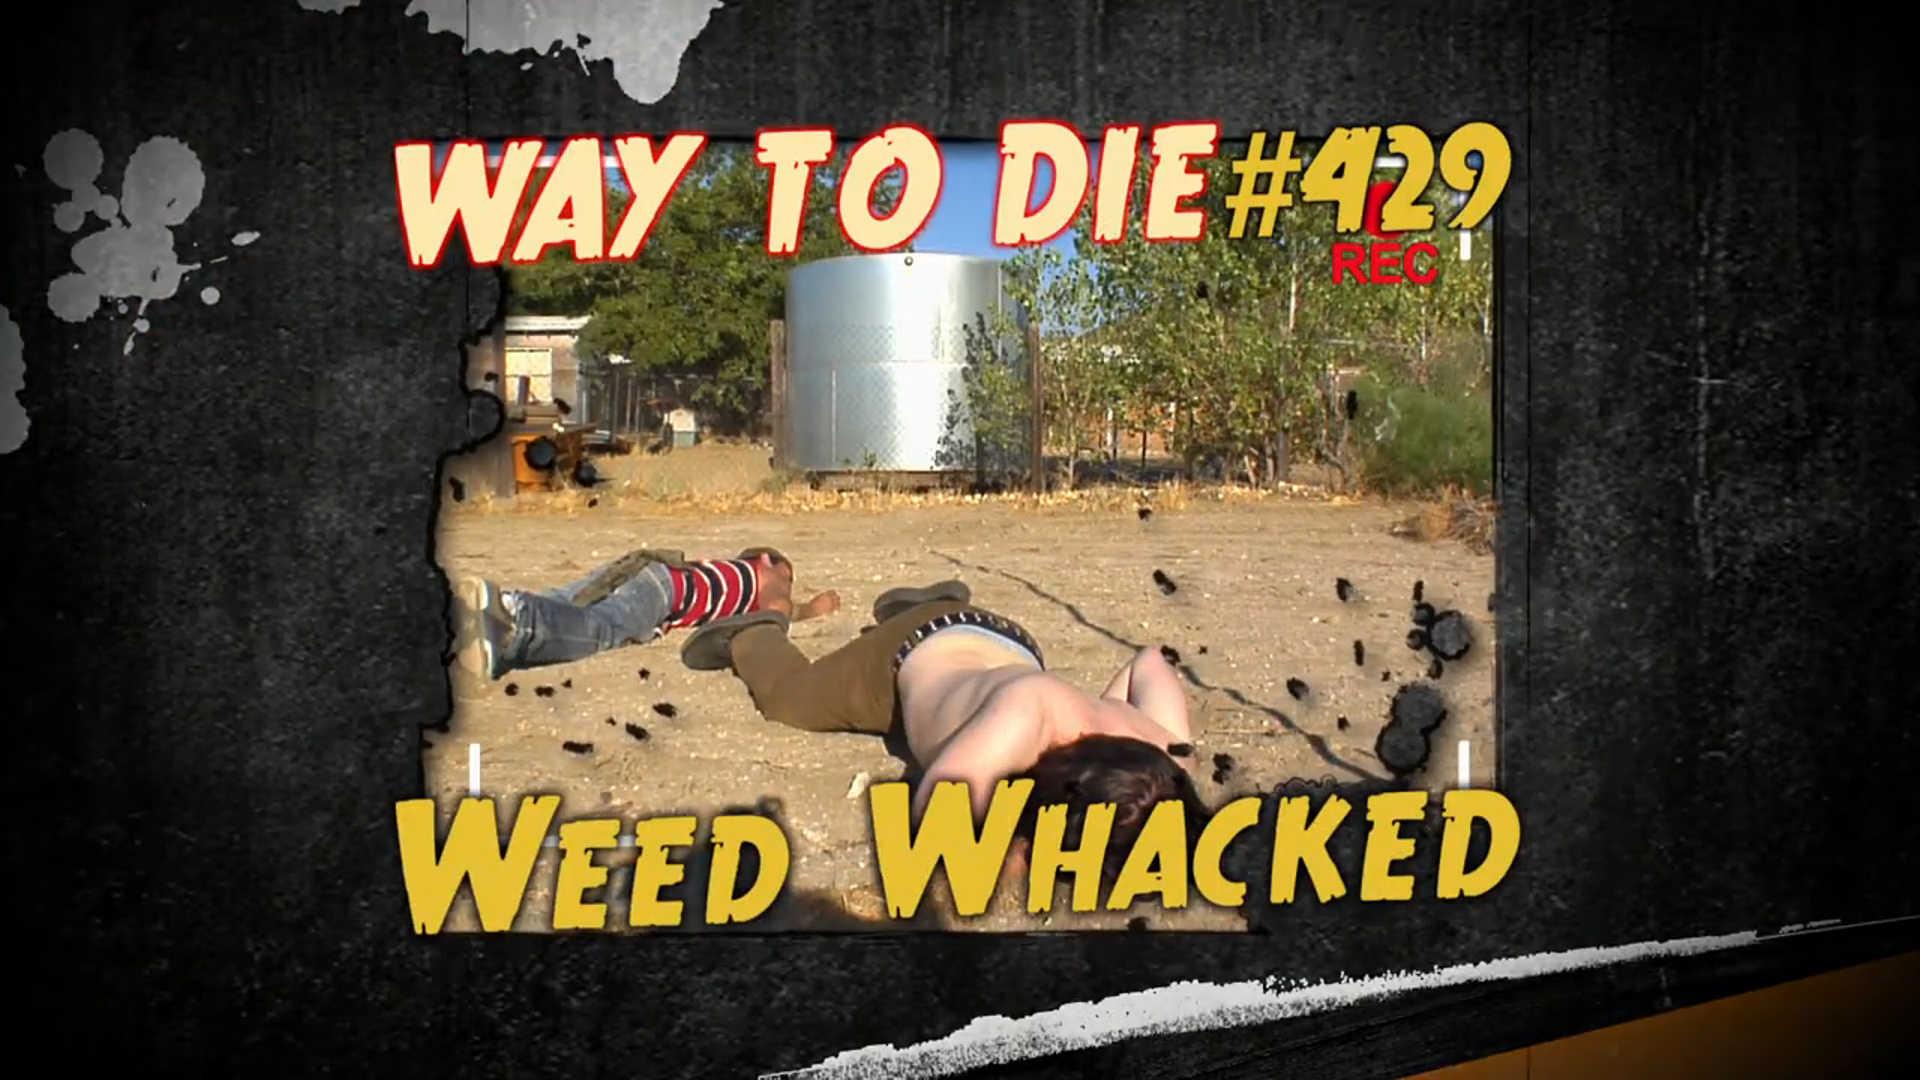 Weed Whacked